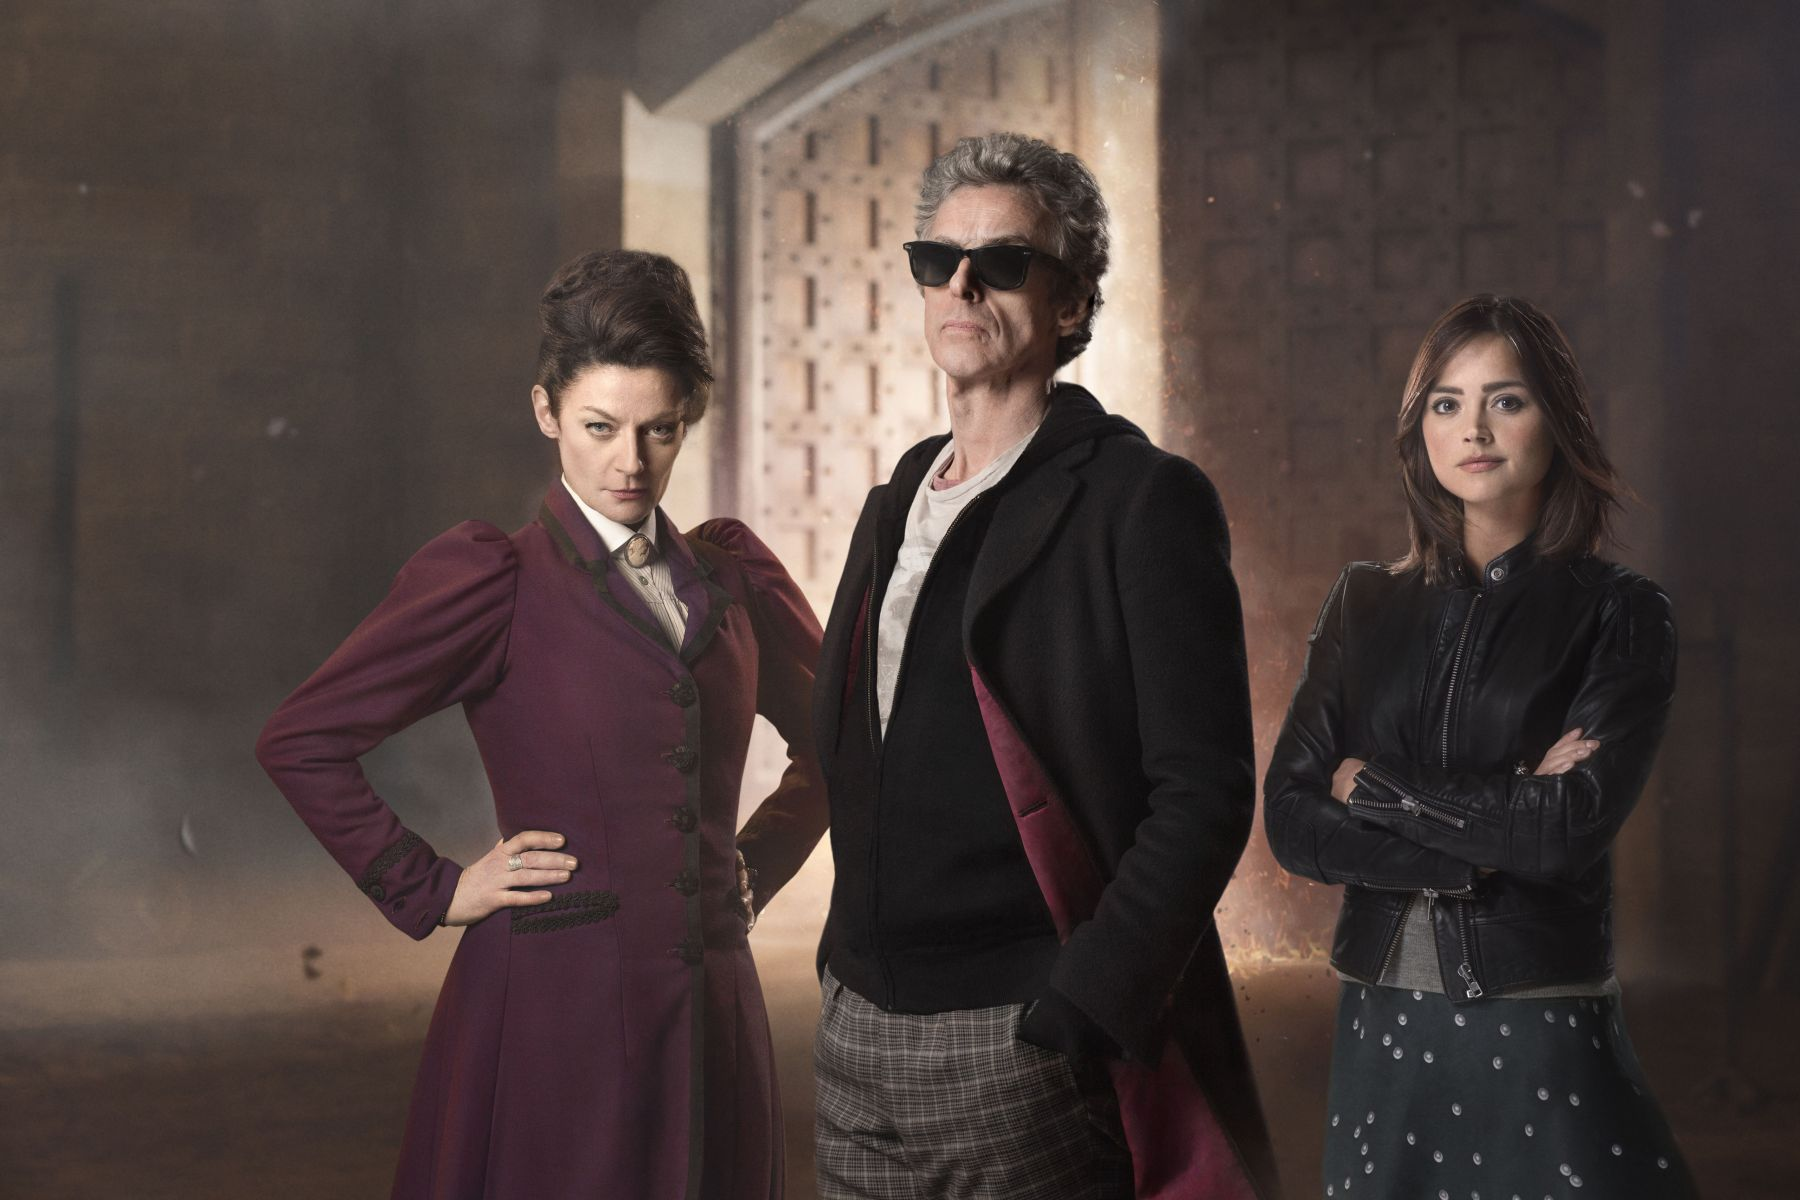 Peter Capaldi, Jenna Coleman and Michelle Gomez as The Doctor, Clara and Missy in The Magician's Apprentice/The Witch's Familiar (Credit: BBC/Simon Ridgway)